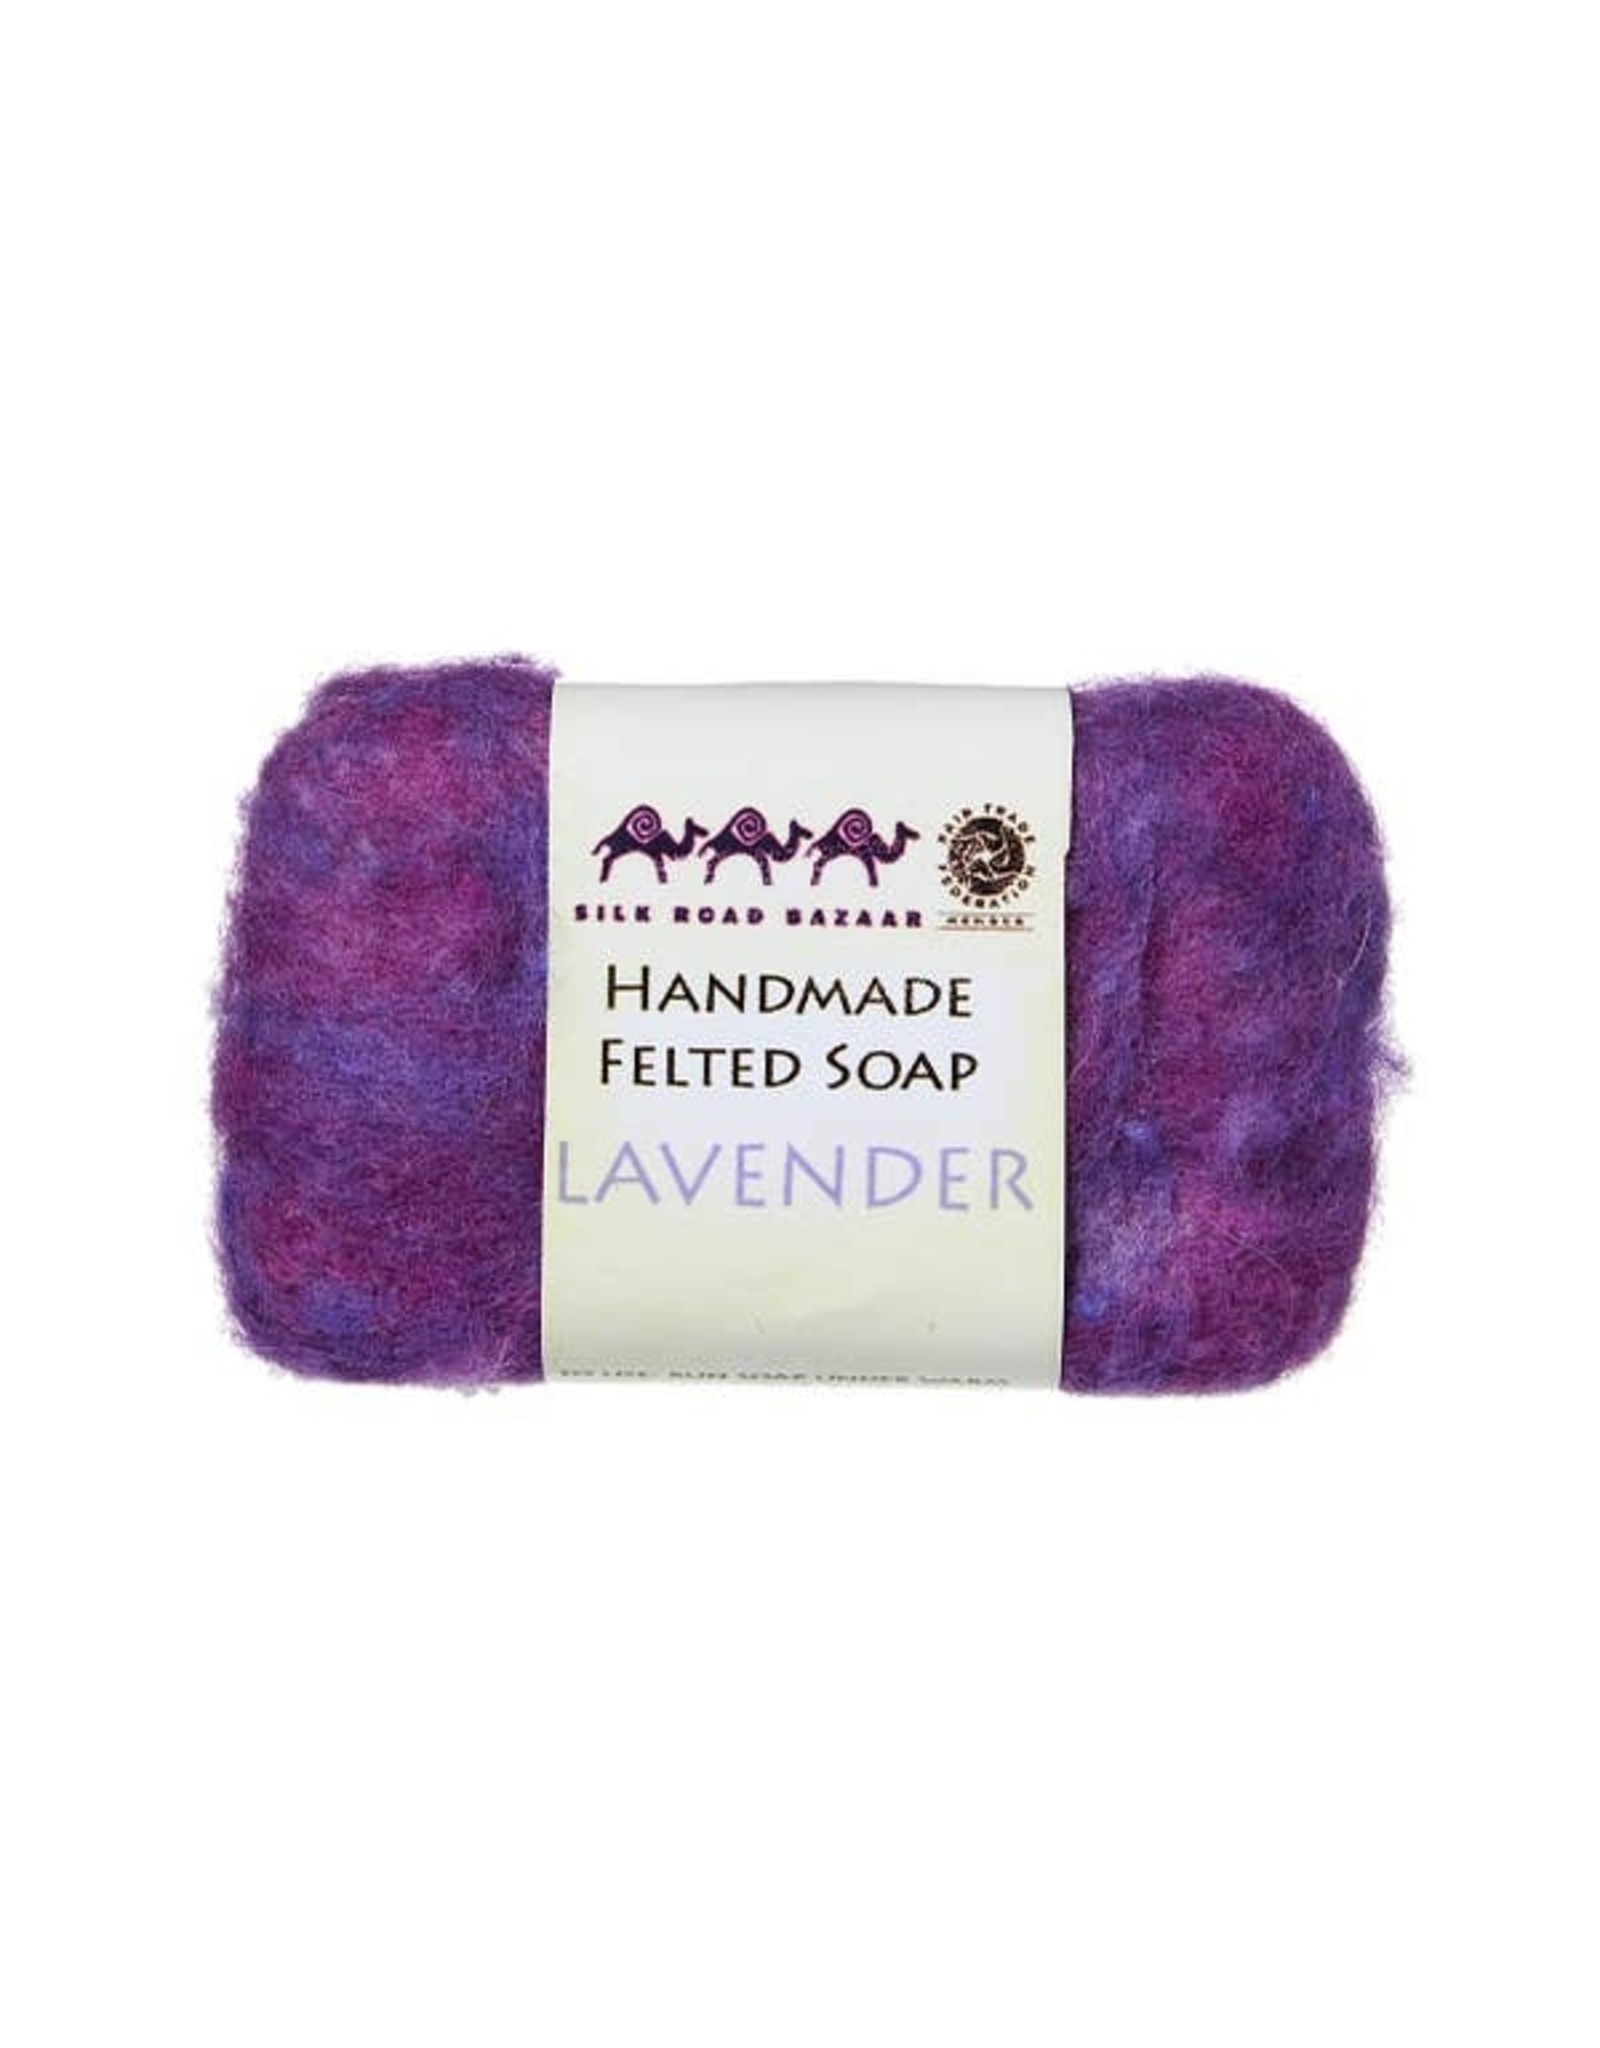 Silk Road Bazaar Lavender Handmade Felted Soap